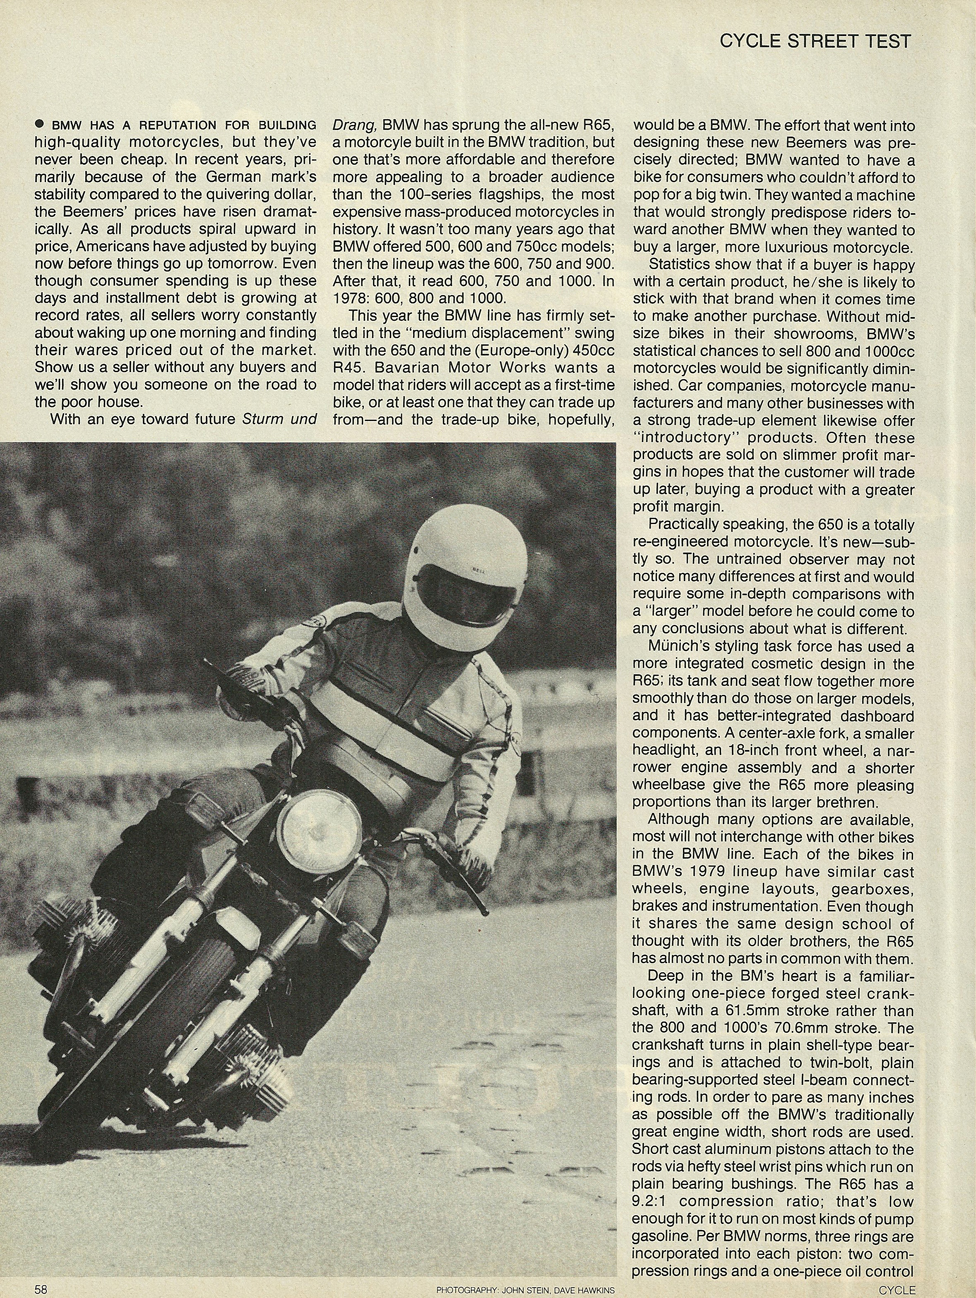 1979 BMW R65 road test 1.jpg